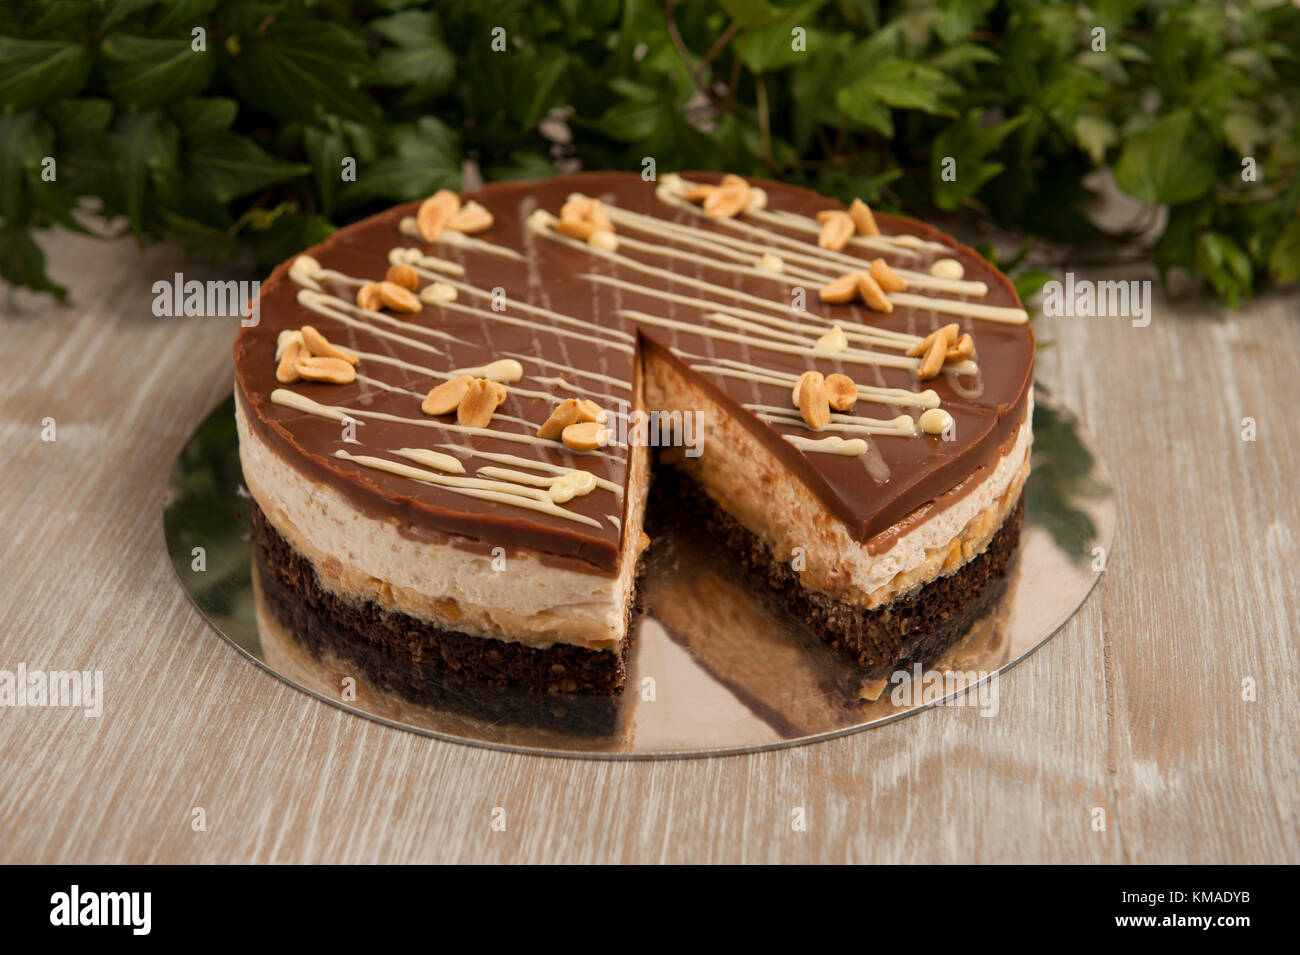 Chocolate cake with peanuts, snickers cake - Stock Image